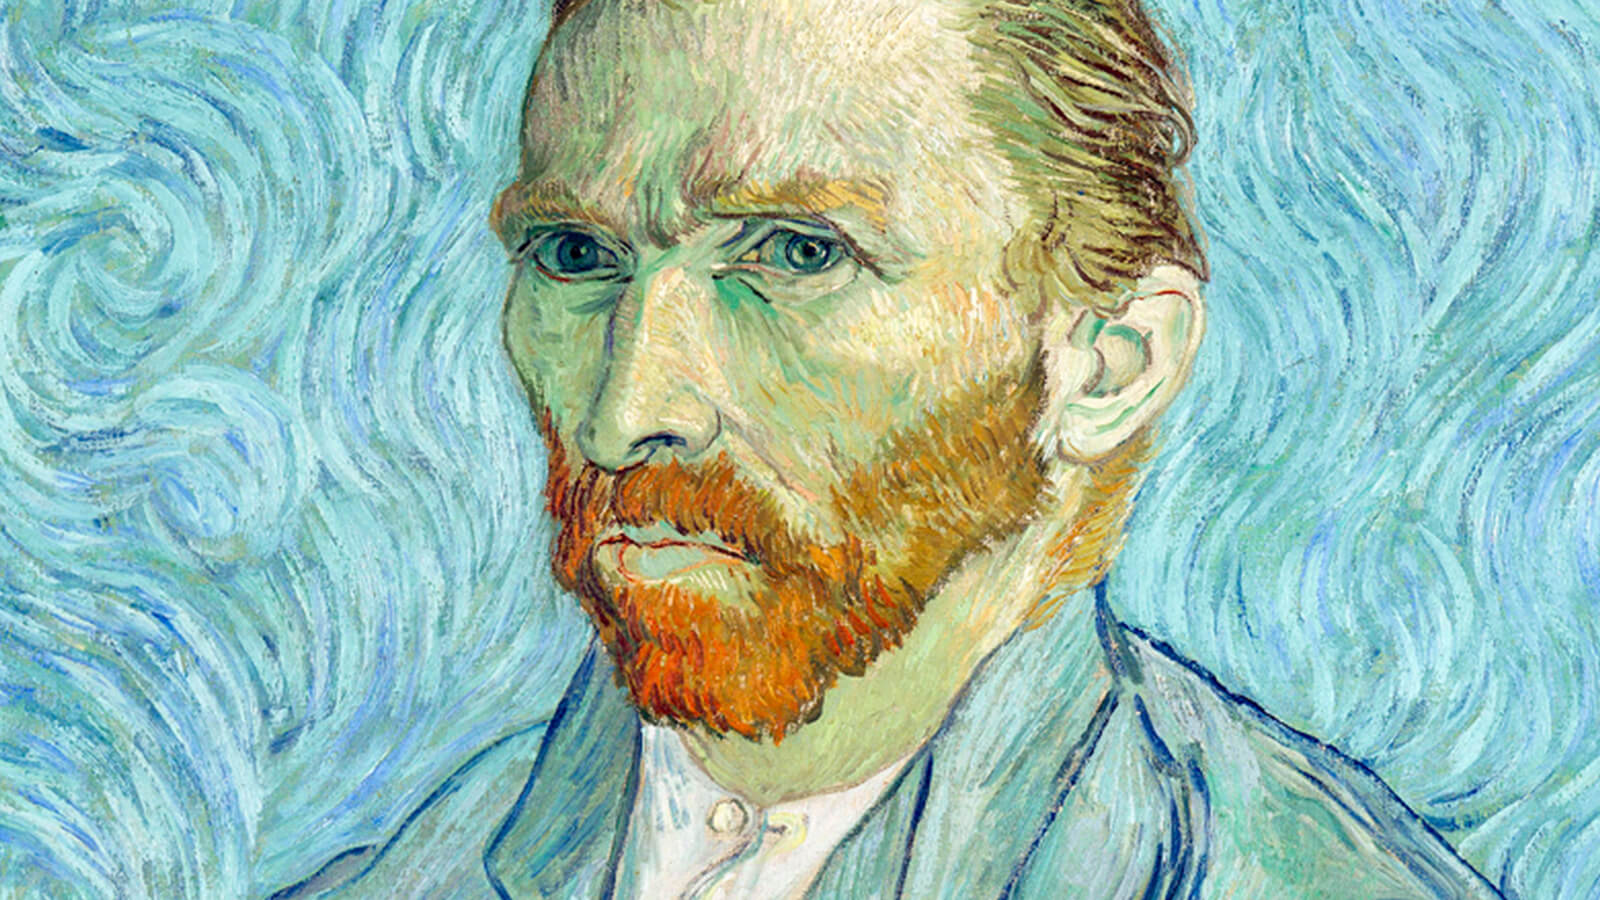 A self portrait by Vincent van Gogh in primarily blue.